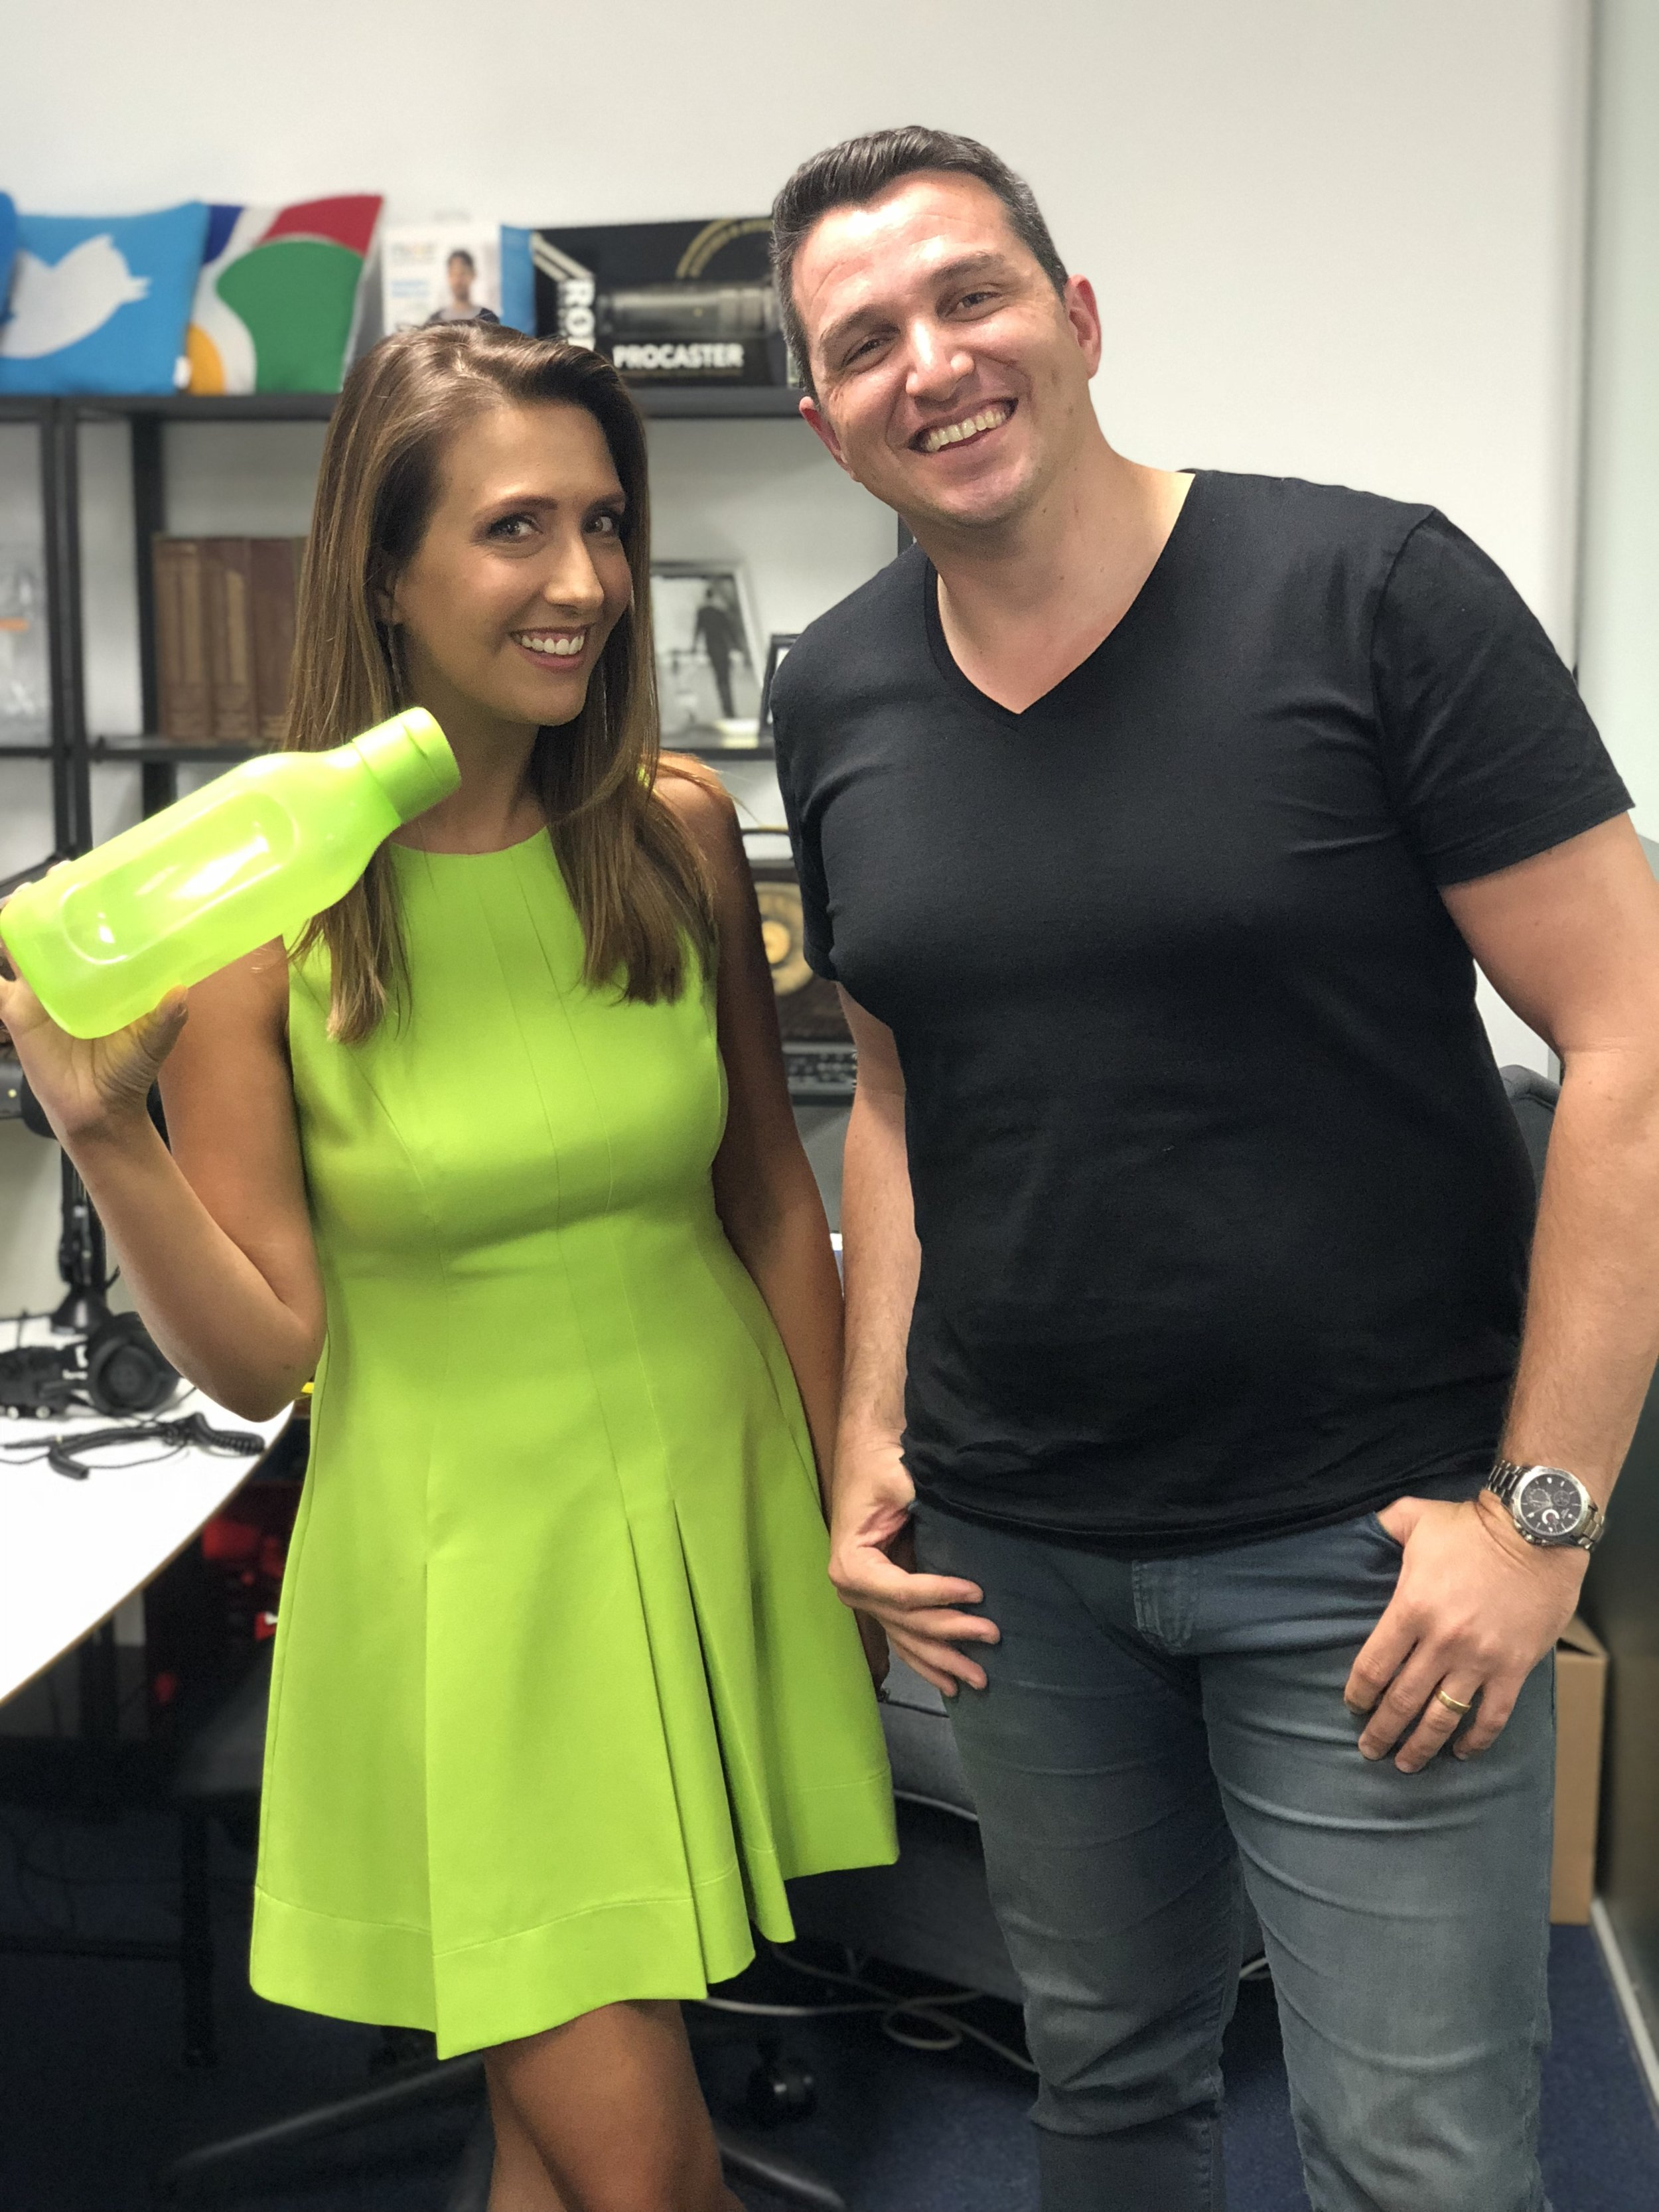 With Matt Hanham, host of Amplify Your Business at the Team Visible Studios, Leederville.